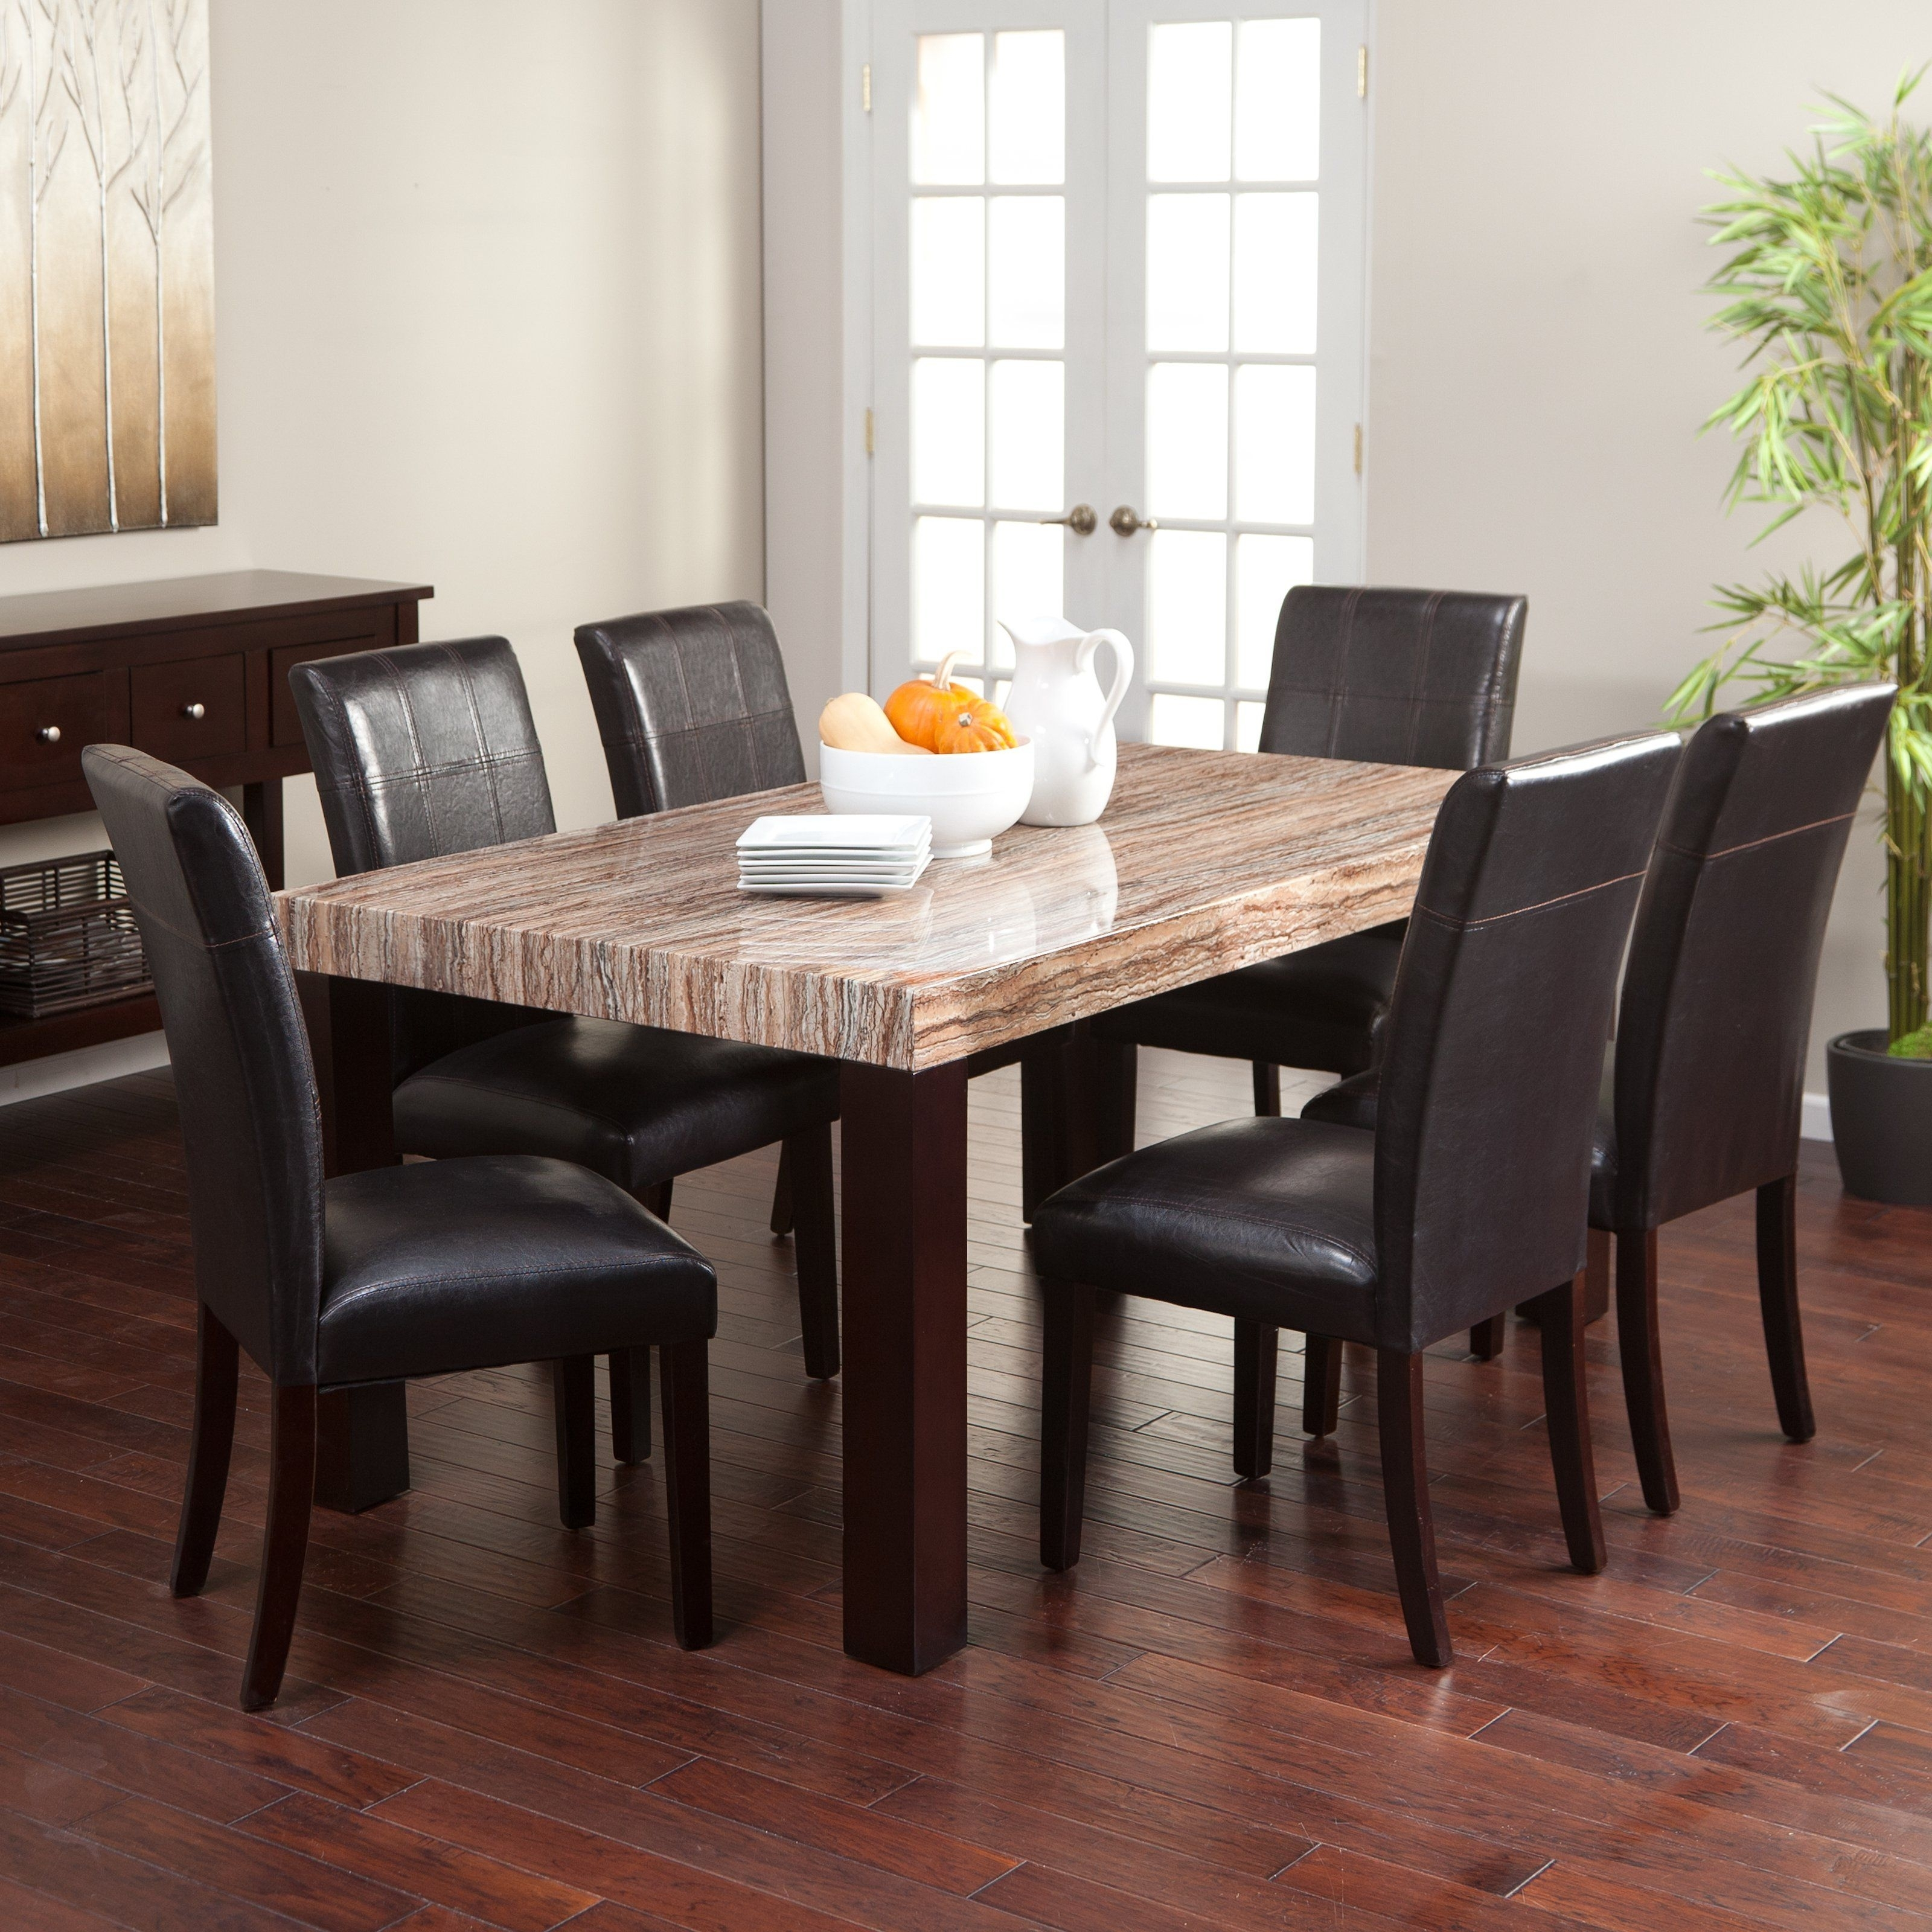 Carmine 7 Piece Dining Table Set – With Its Creamy Caramel Colored In Recent Palazzo 6 Piece Rectangle Dining Sets With Joss Side Chairs (Image 3 of 20)